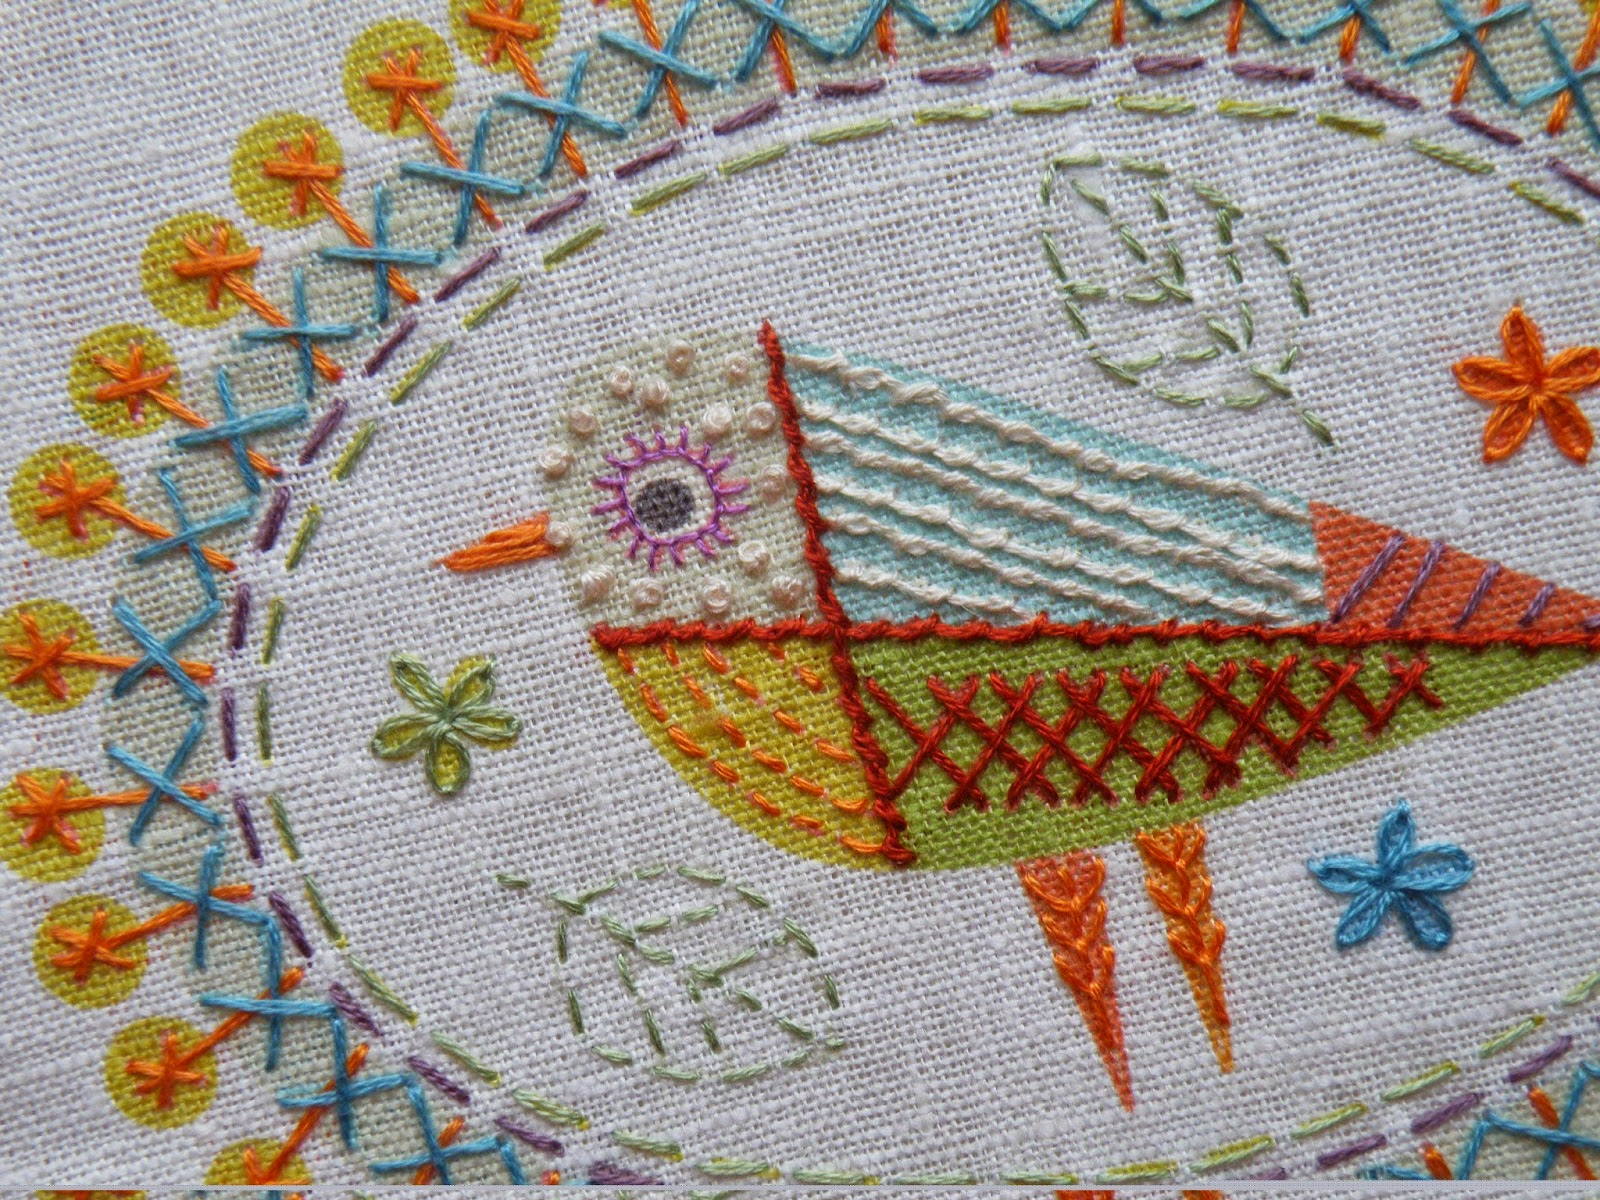 Birdie 2 Embroidery Kit Detail